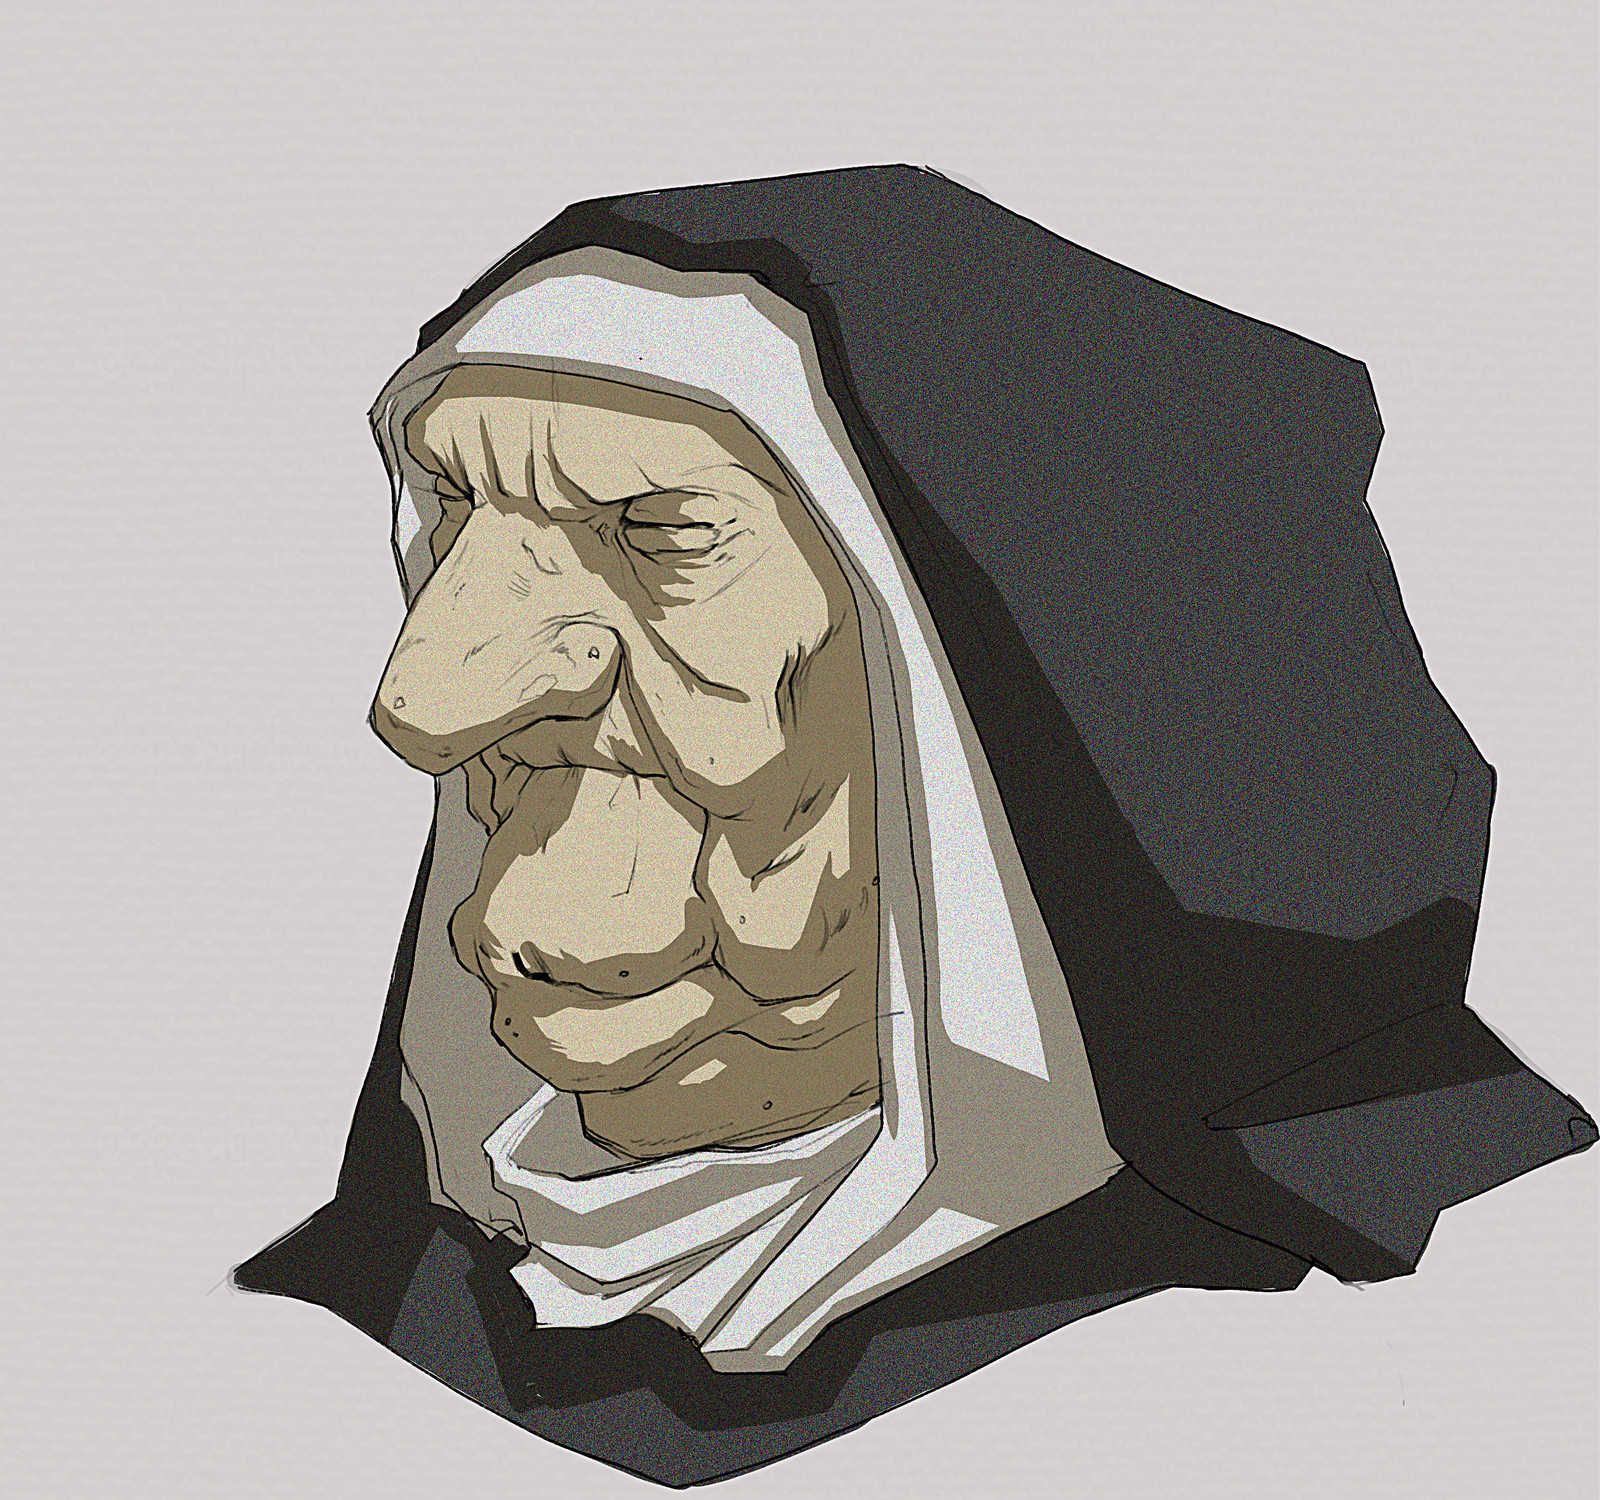 Nun portrait